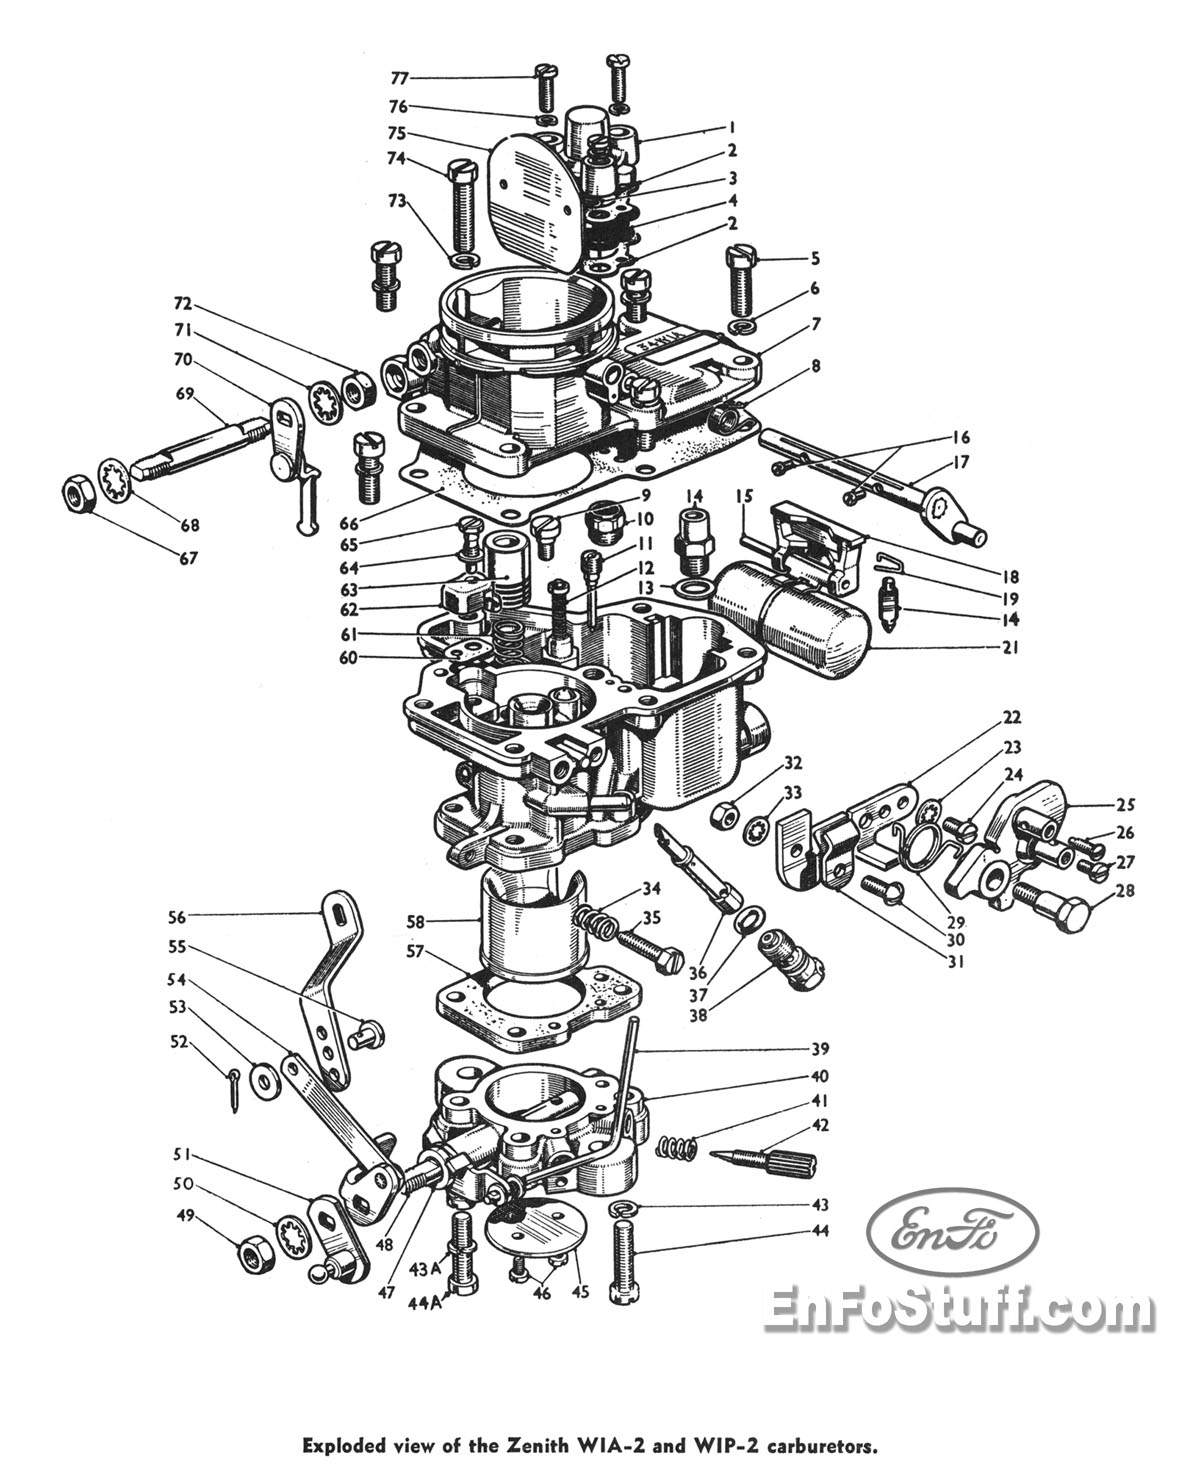 Zenith Carburetor Parts Diagram